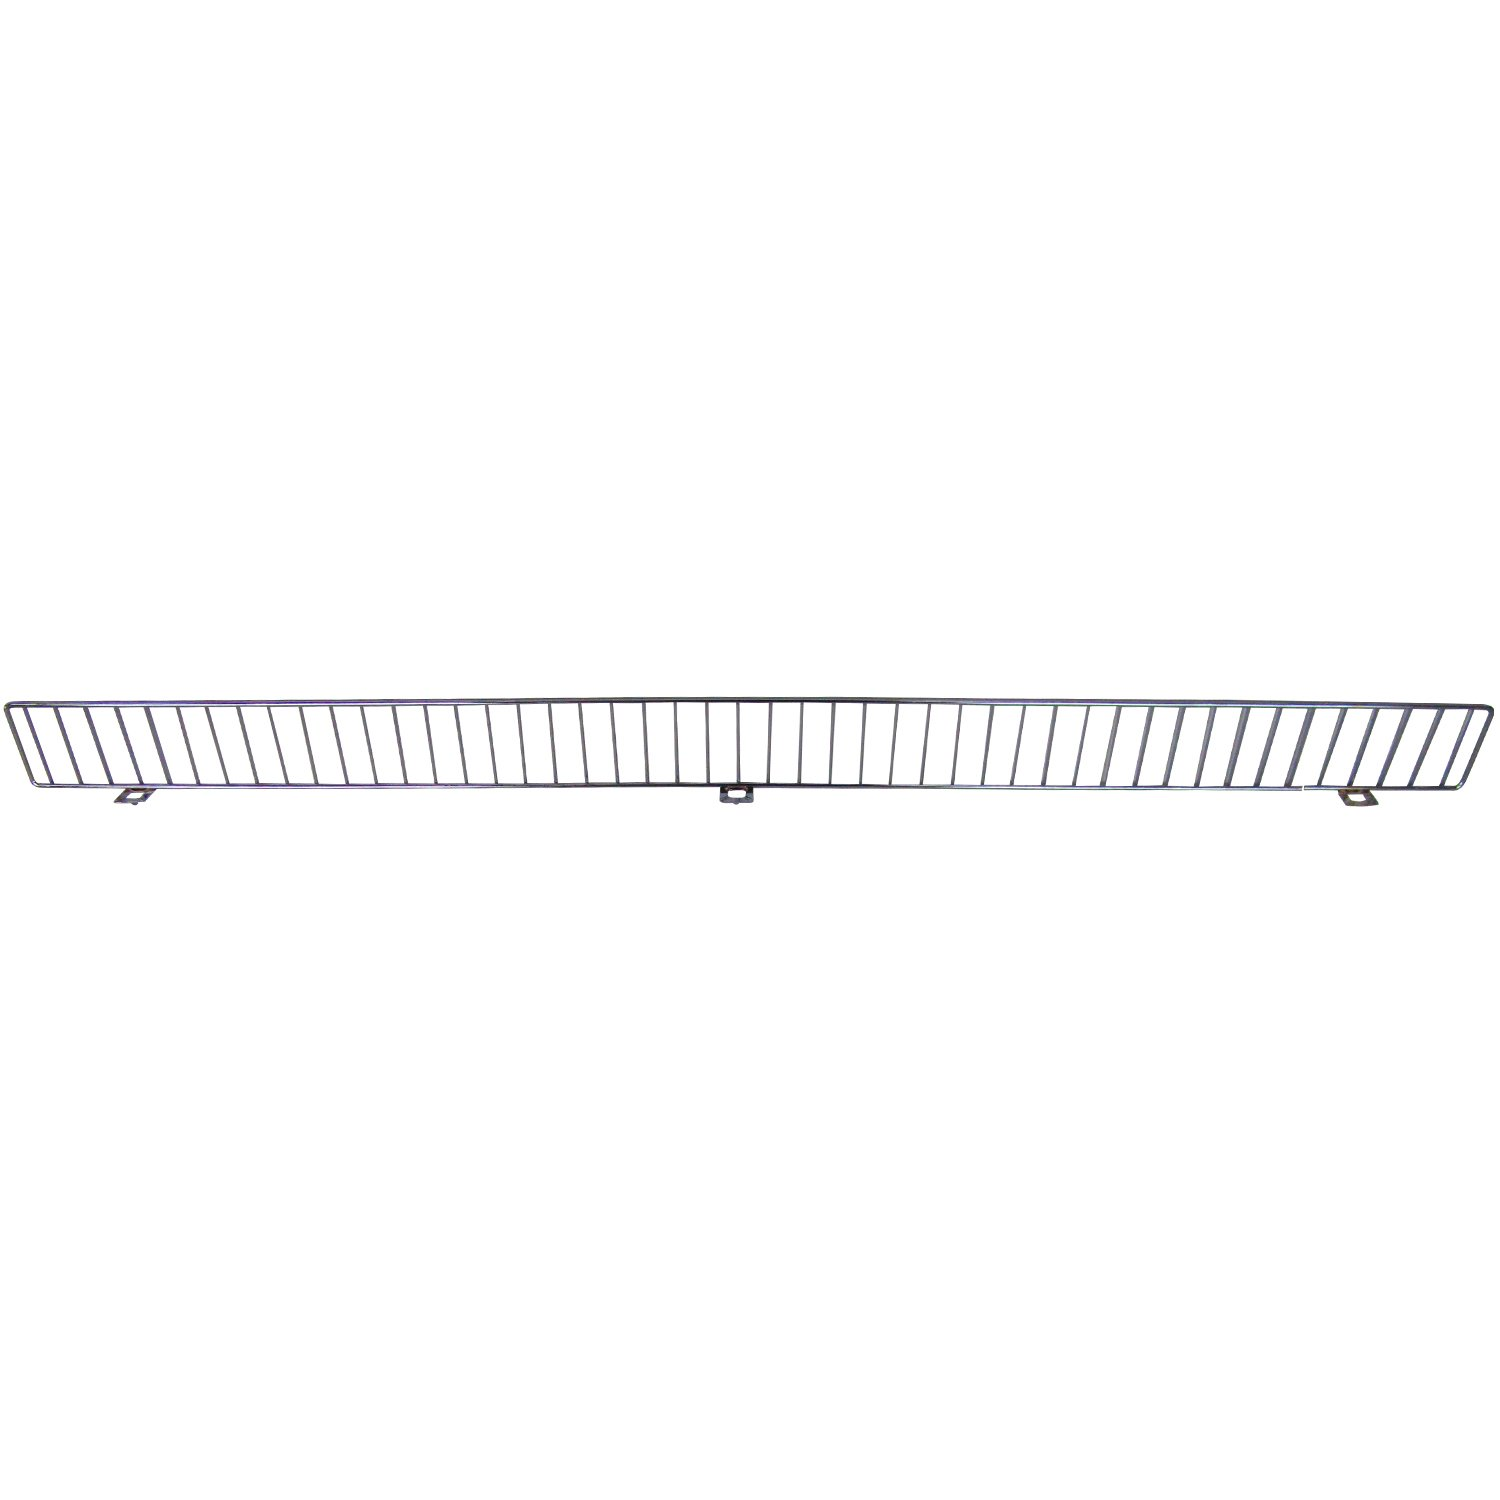 AWP CA-FDF348CN-2 Chrome Front Fence Streater, 3 x 48 Size, Chrome, (Pack of 25)